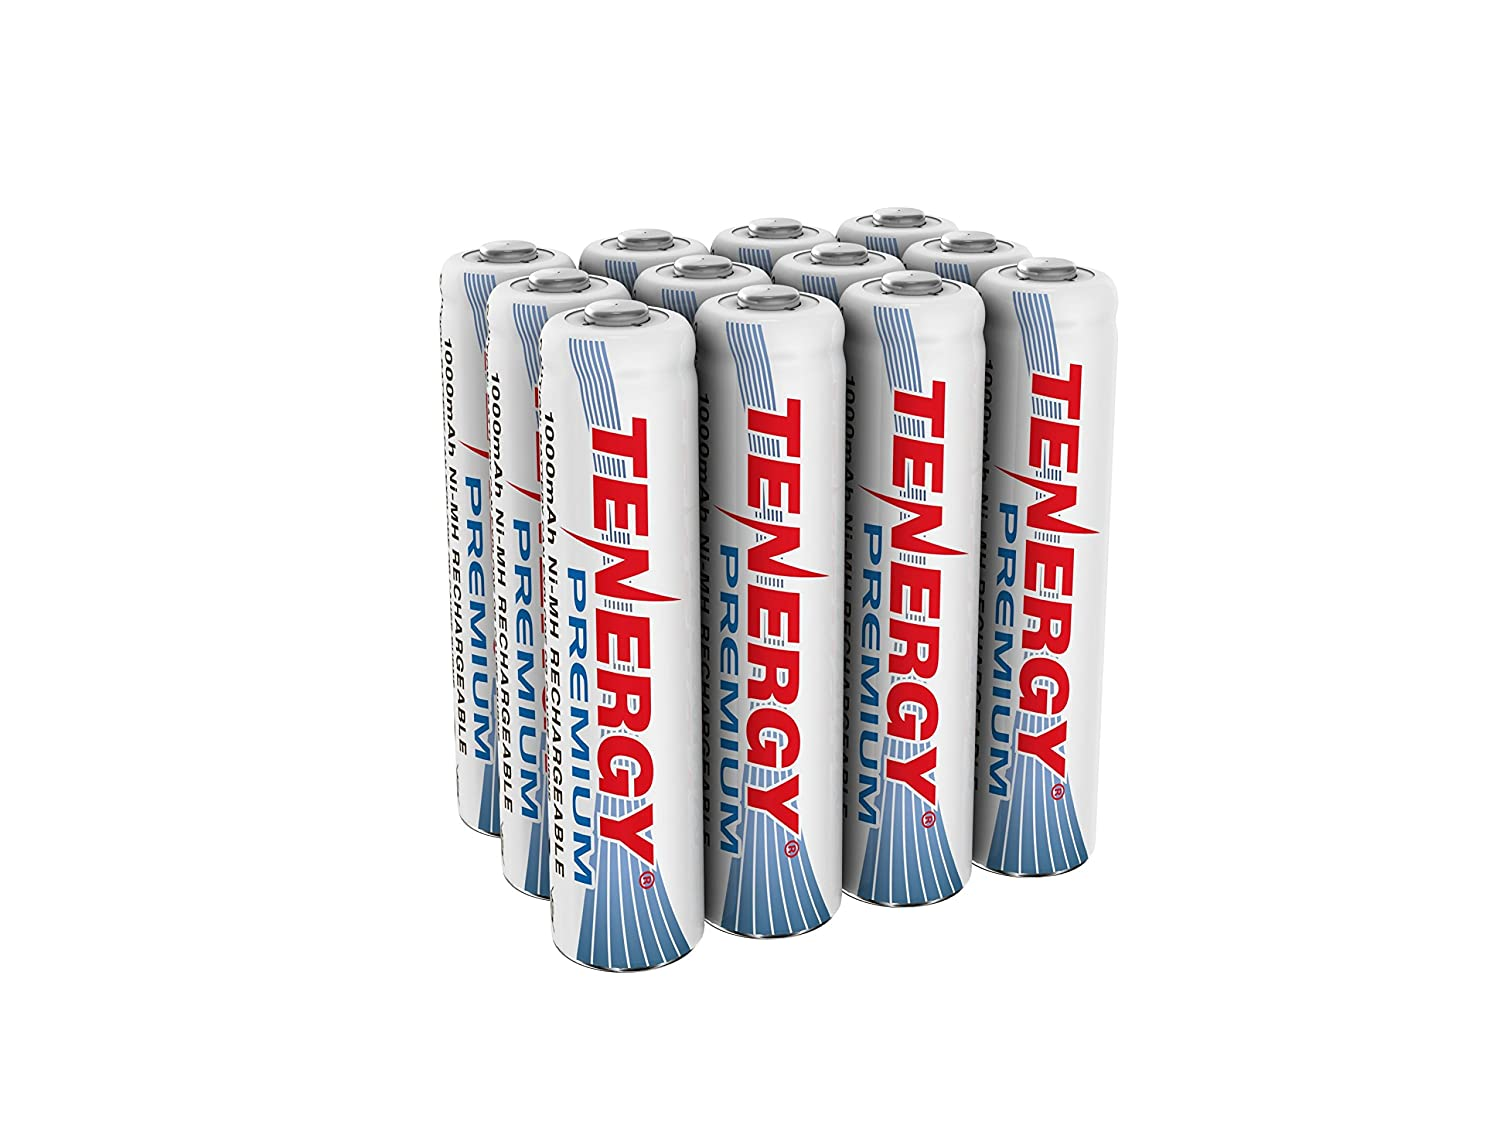 Tenergy Premium Rechargeable AAA Batteries, High Capacity 1000mAh NiMH AAA Batteries, AAA Cell Battery, 12-Pack 90603